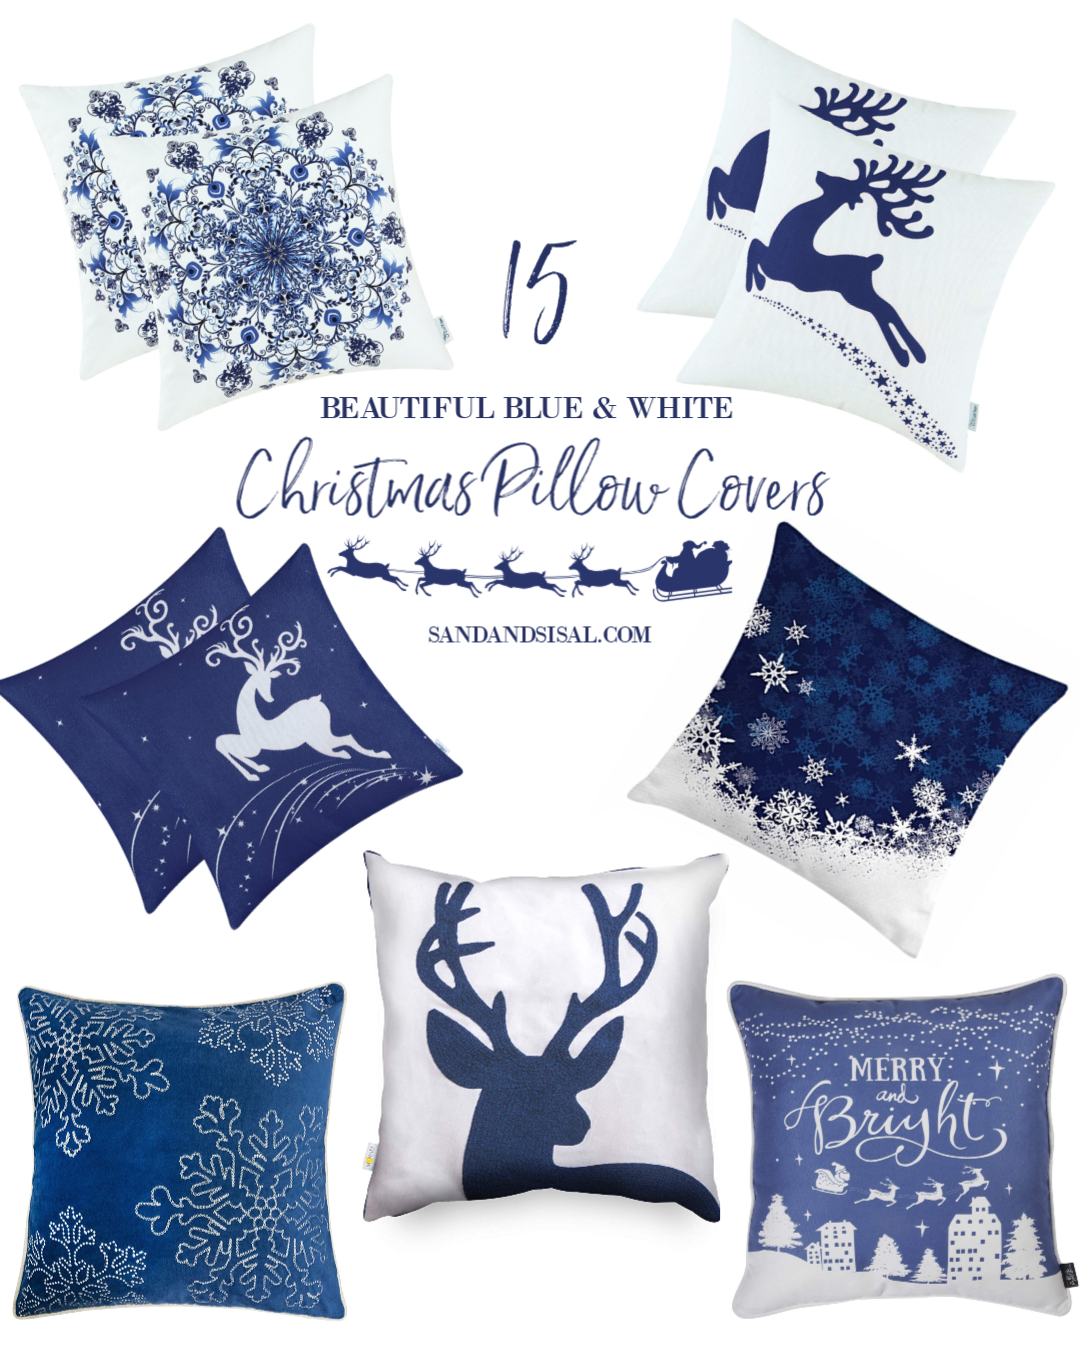 15 Beautiful Blue and White Christmas Pillow Covers images